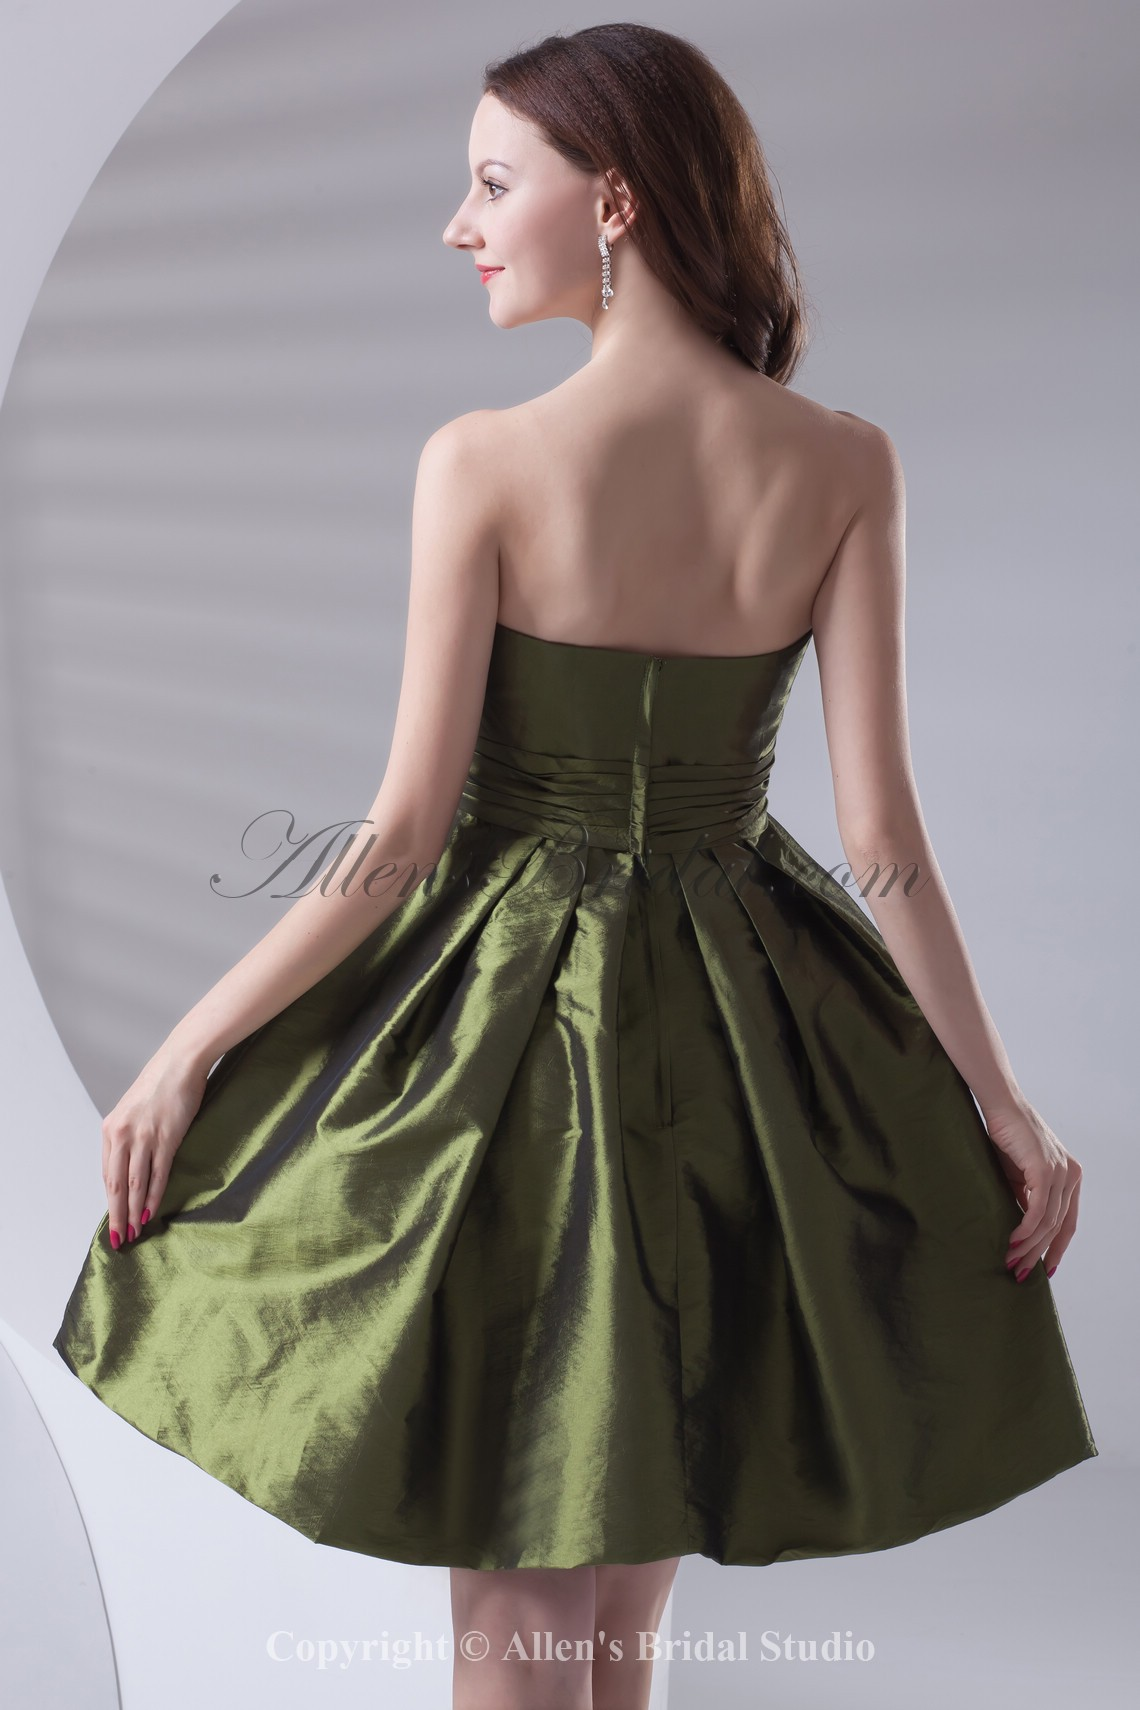 /408-3266/taffeta-strapless-neckline-a-line-knee-length-cocktail-dress.jpg